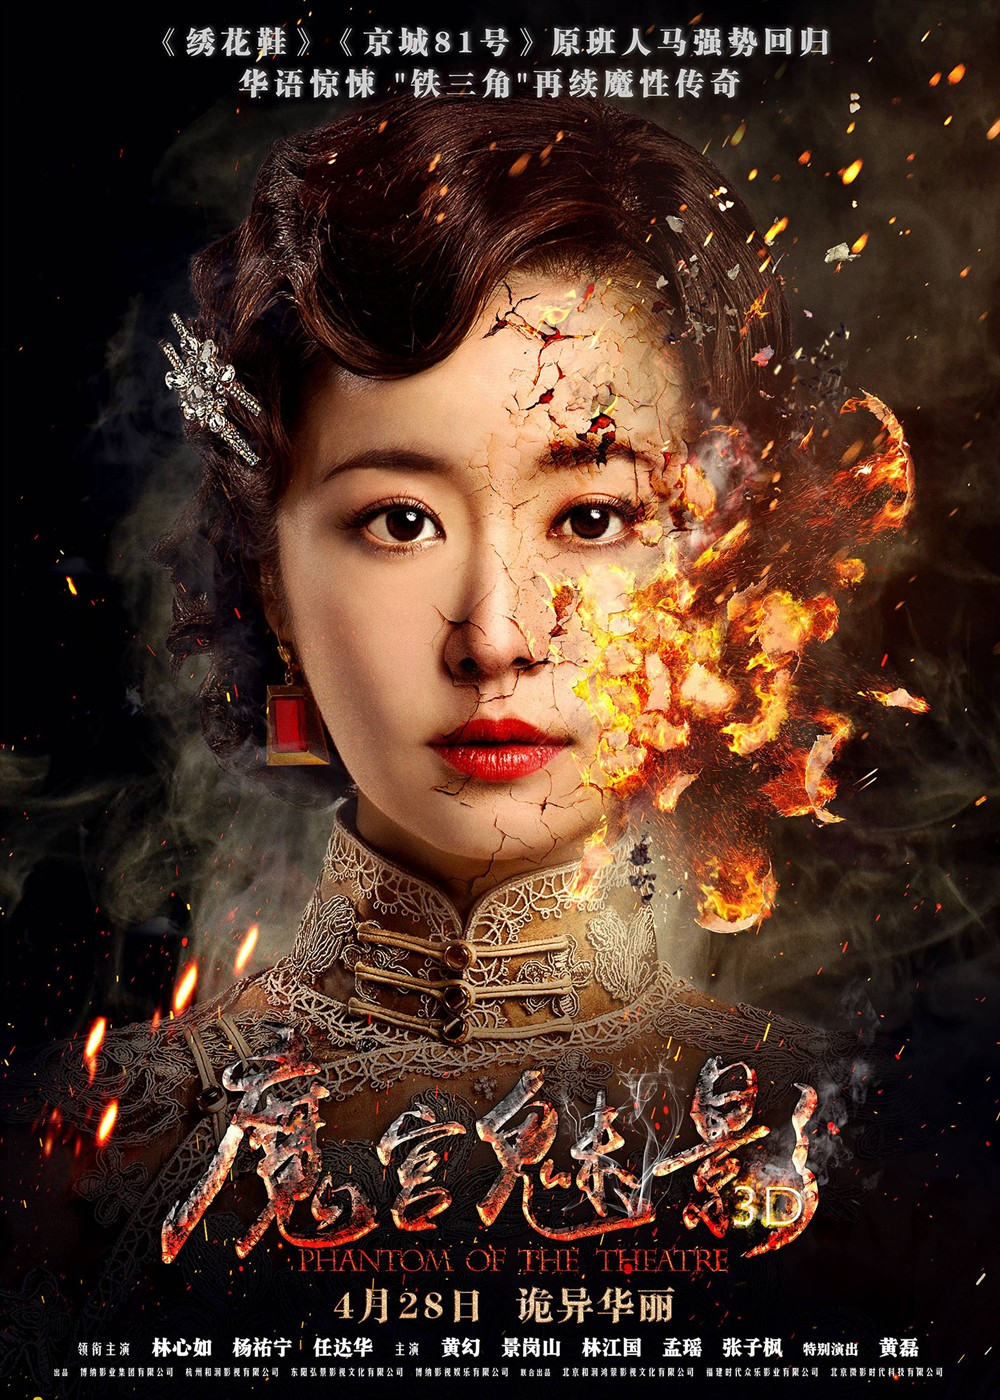 Phantom Of The Theatre 2016 Review Asian Film Strike HD Wallpapers Download free images and photos [musssic.tk]